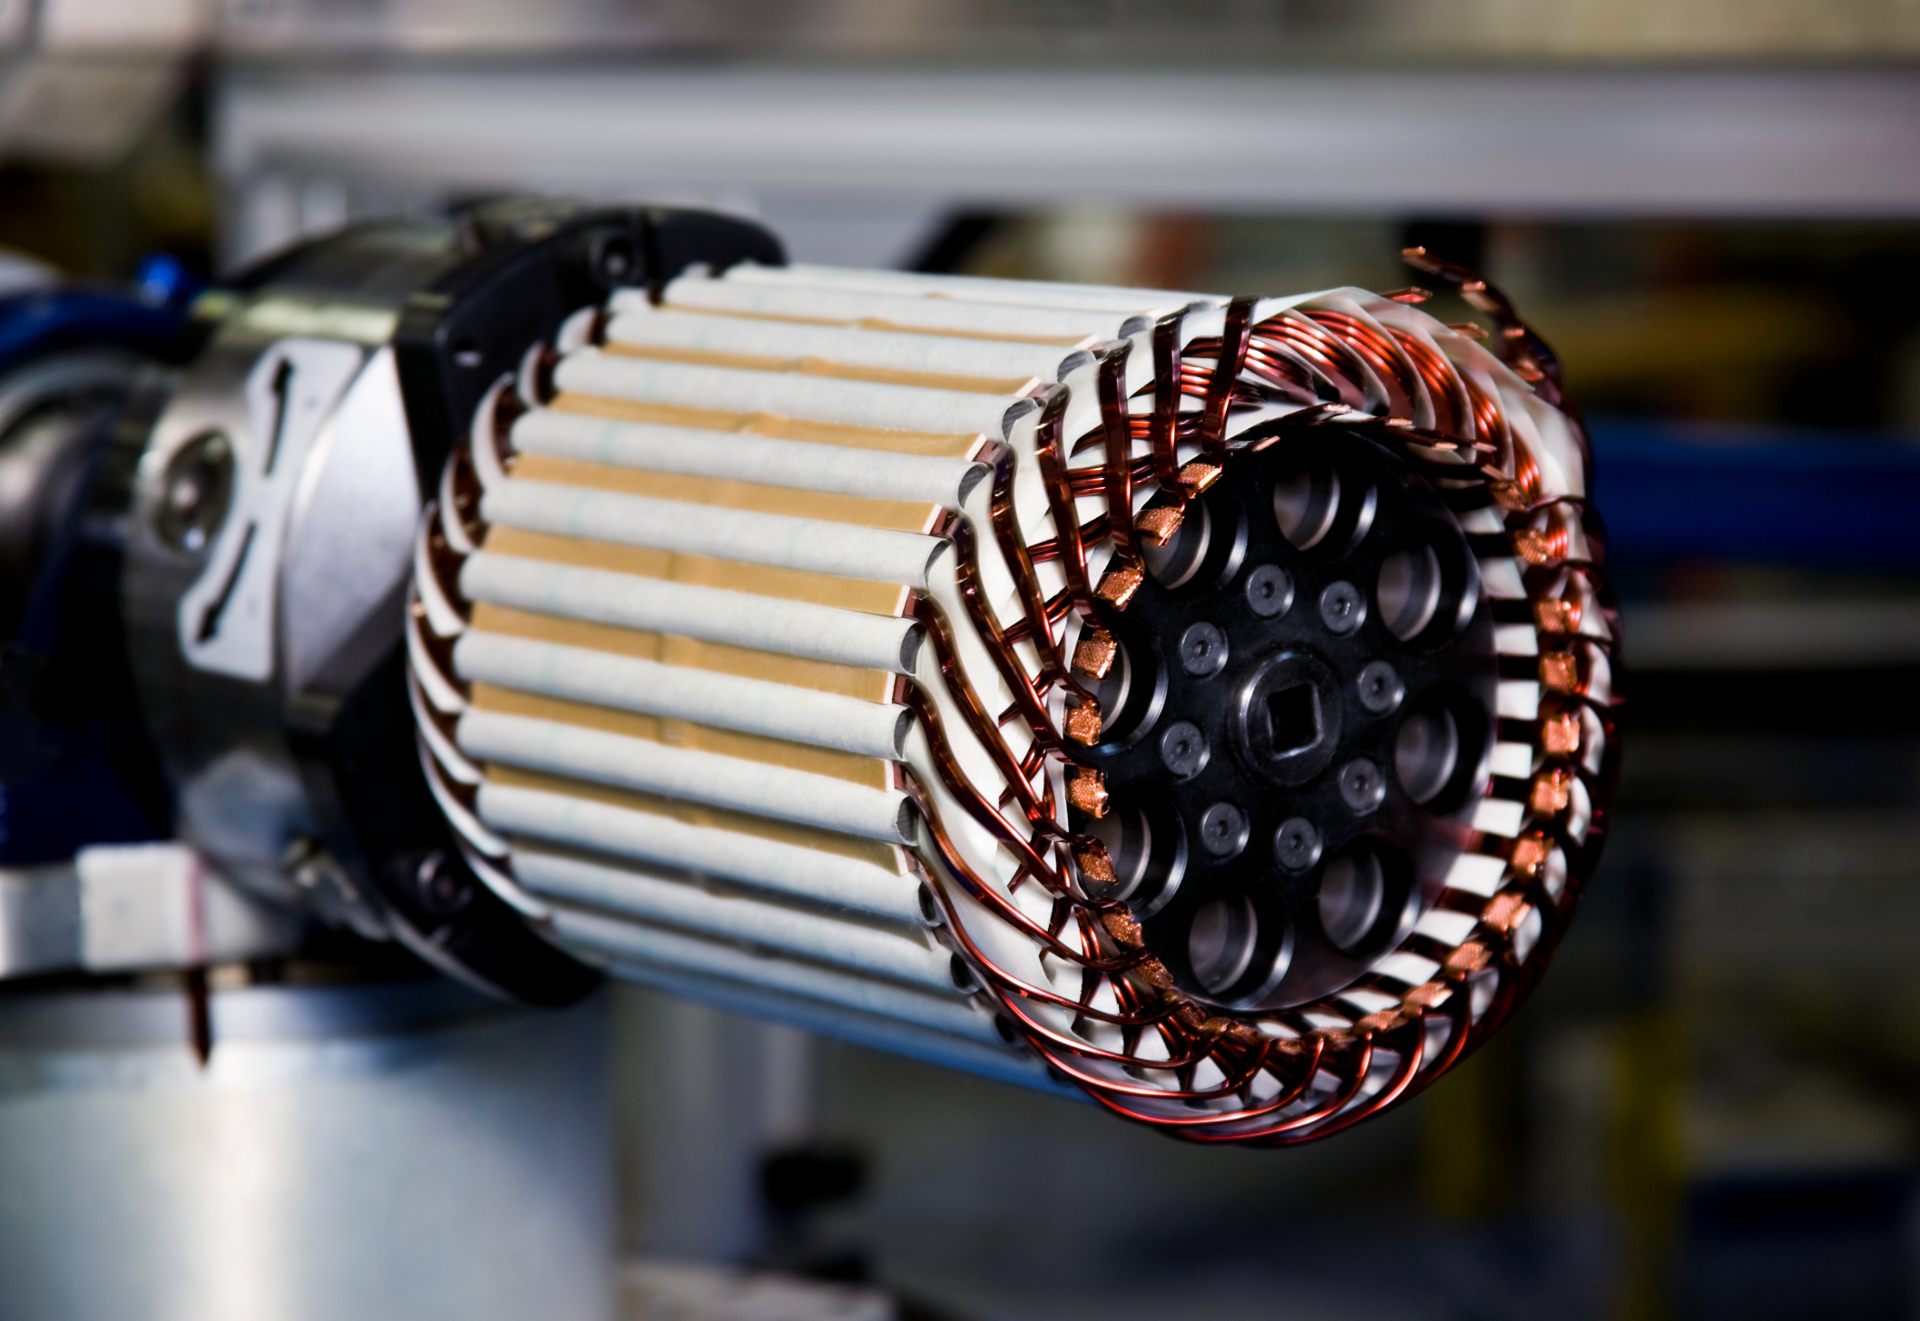 Patented Stator Technologies